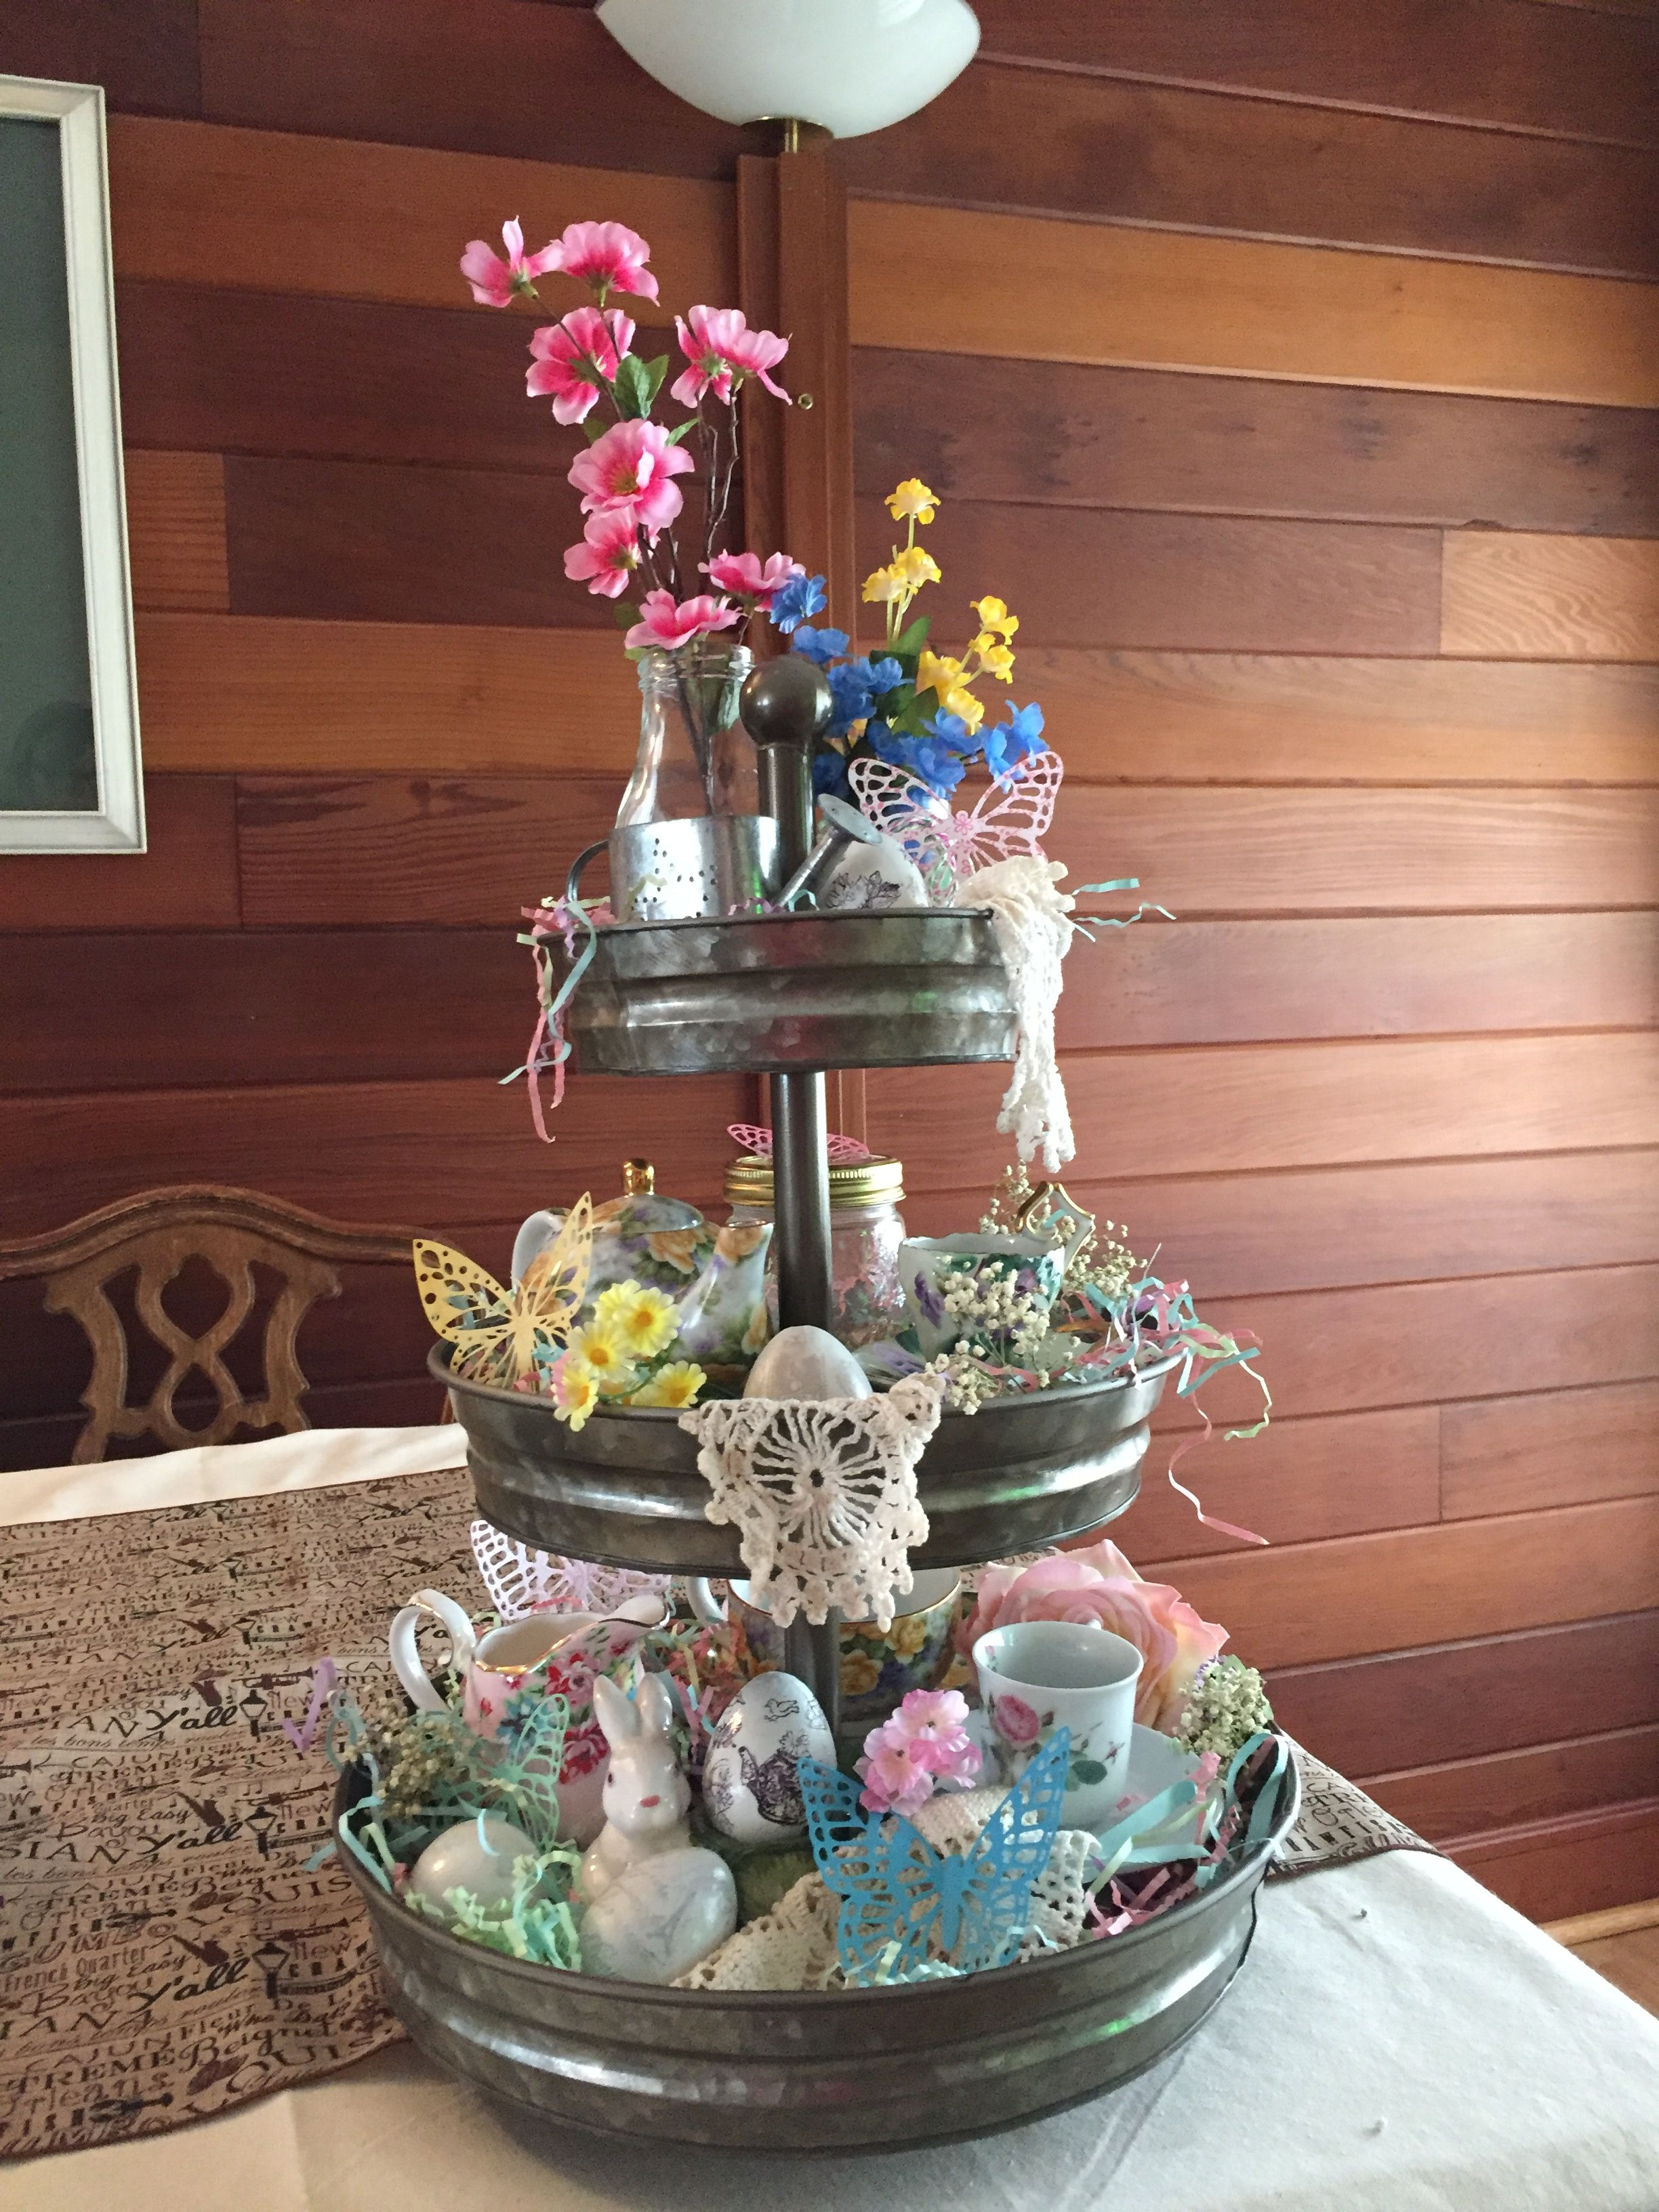 Galvanized Tray For Spring Easter Can Be Changed Each Season Spring Easter Decor Galvanized Tiered Tray Tiered Tray